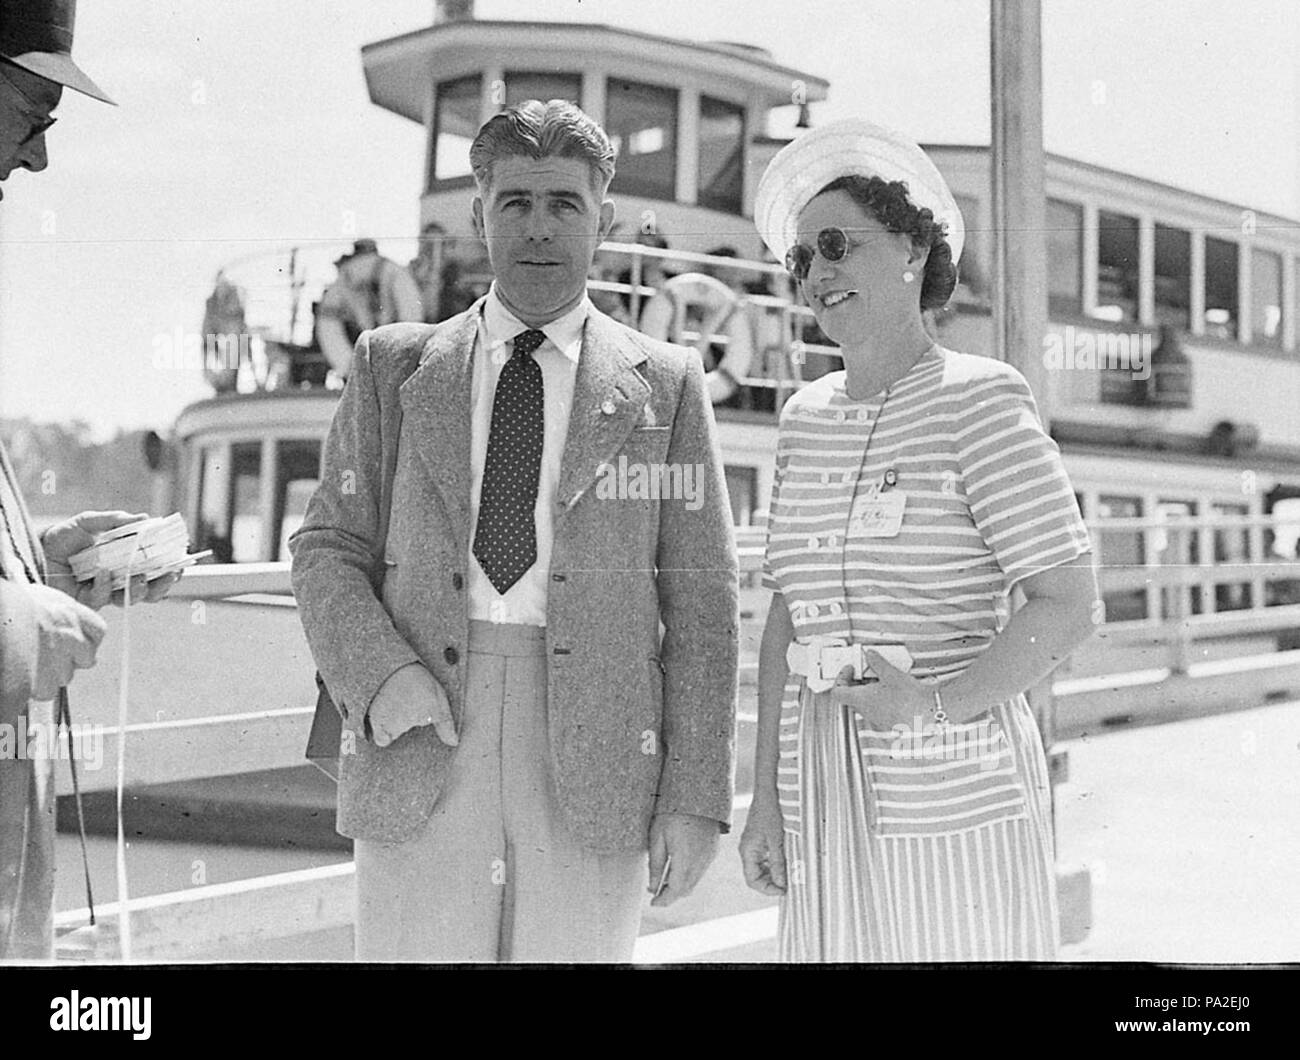 262 SLNSW 36719 Associated Bread Manufacturing Conference ferries leaving for picnic - Stock Image